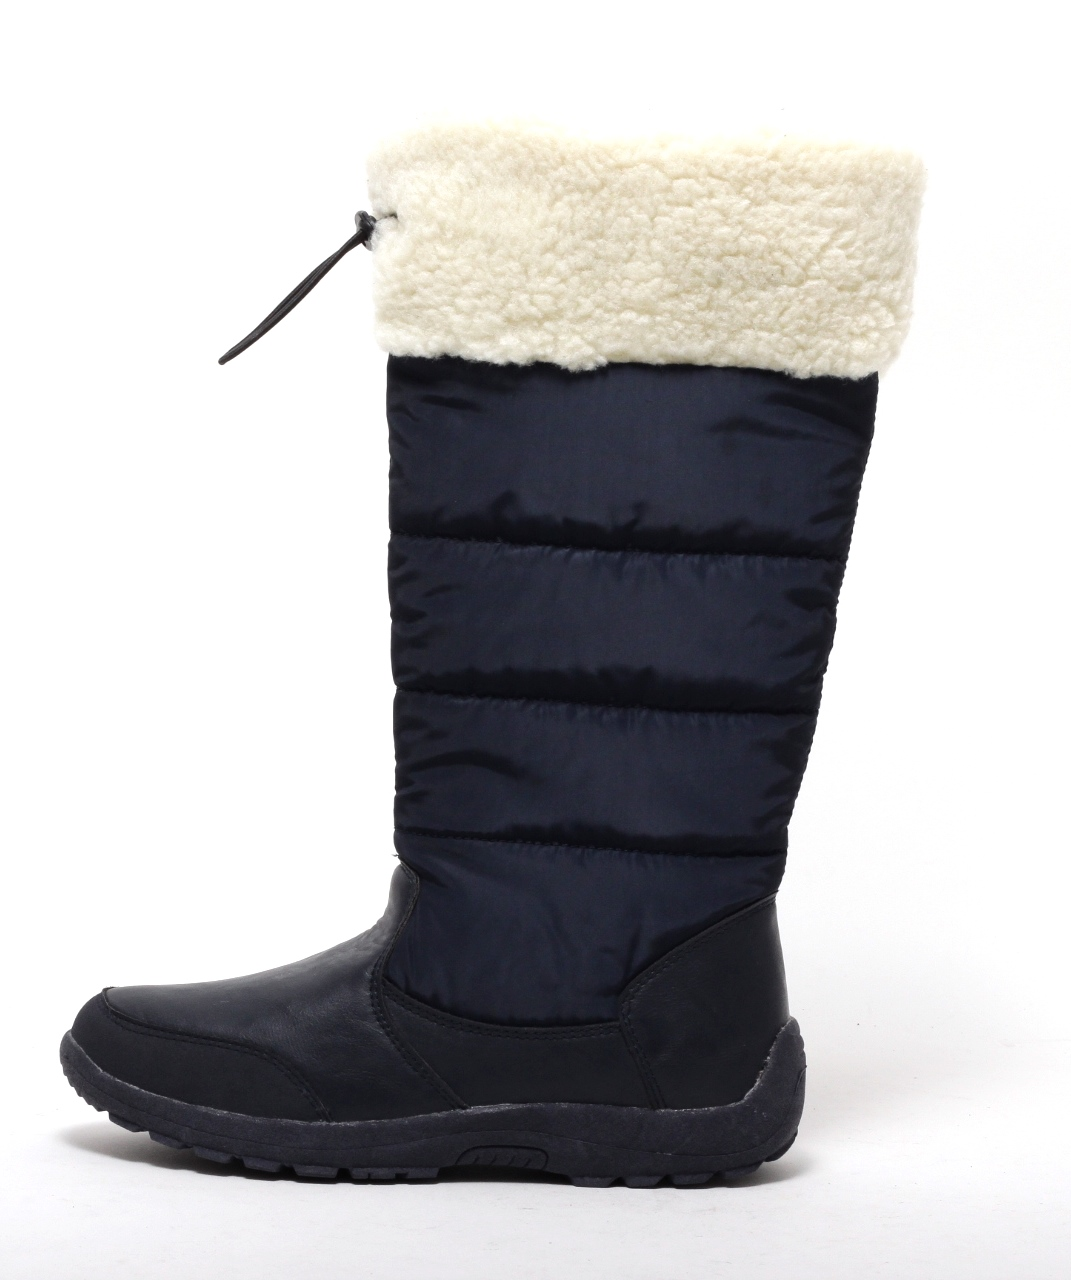 on sale 3e6b1 f0622 Damen Thermoboots Gr 38-41 warm gefüttert Outdoor Schnee Winterstiefel navy  blau